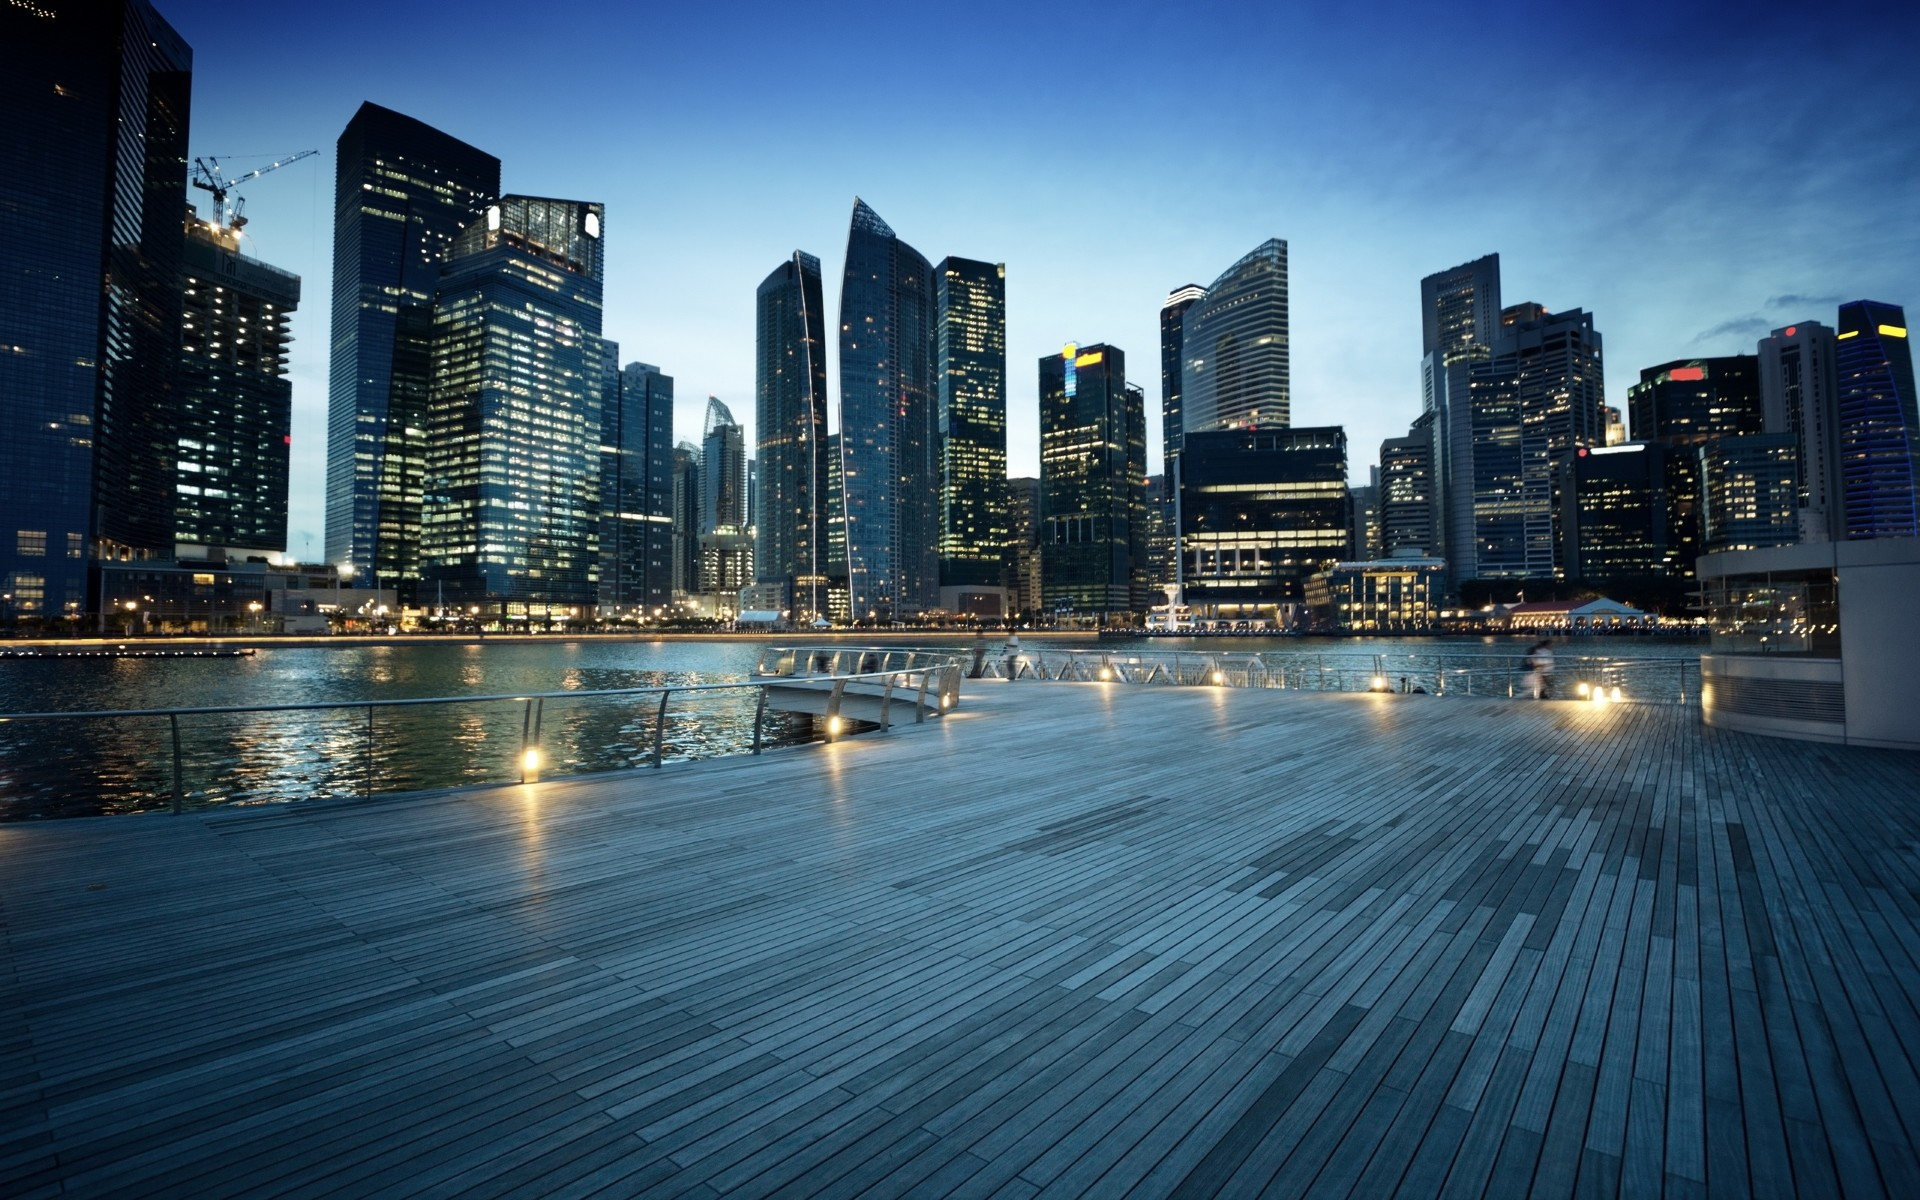 Singapore in the evening wallpaper